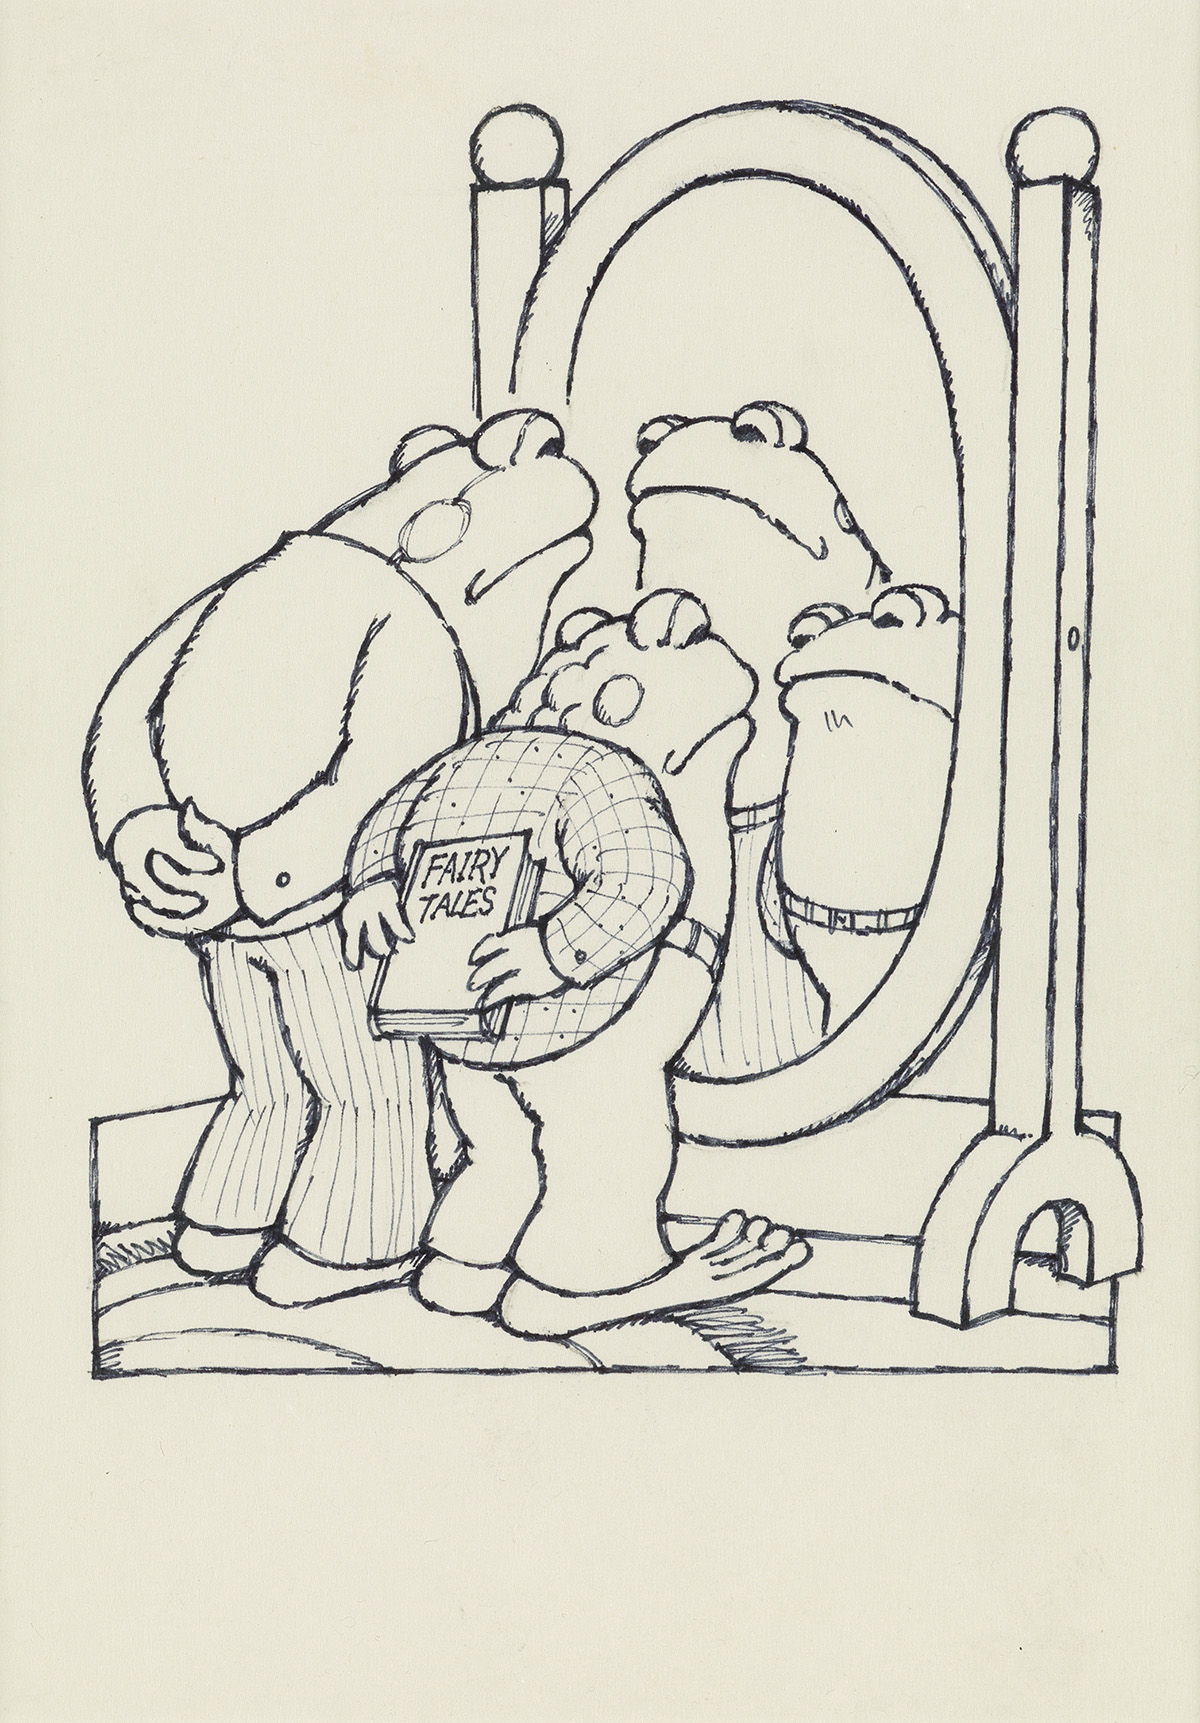 ARNOLD LOBEL (1933-1987)  `We look brave, said Frog. Yes, but are we? asked Toad.